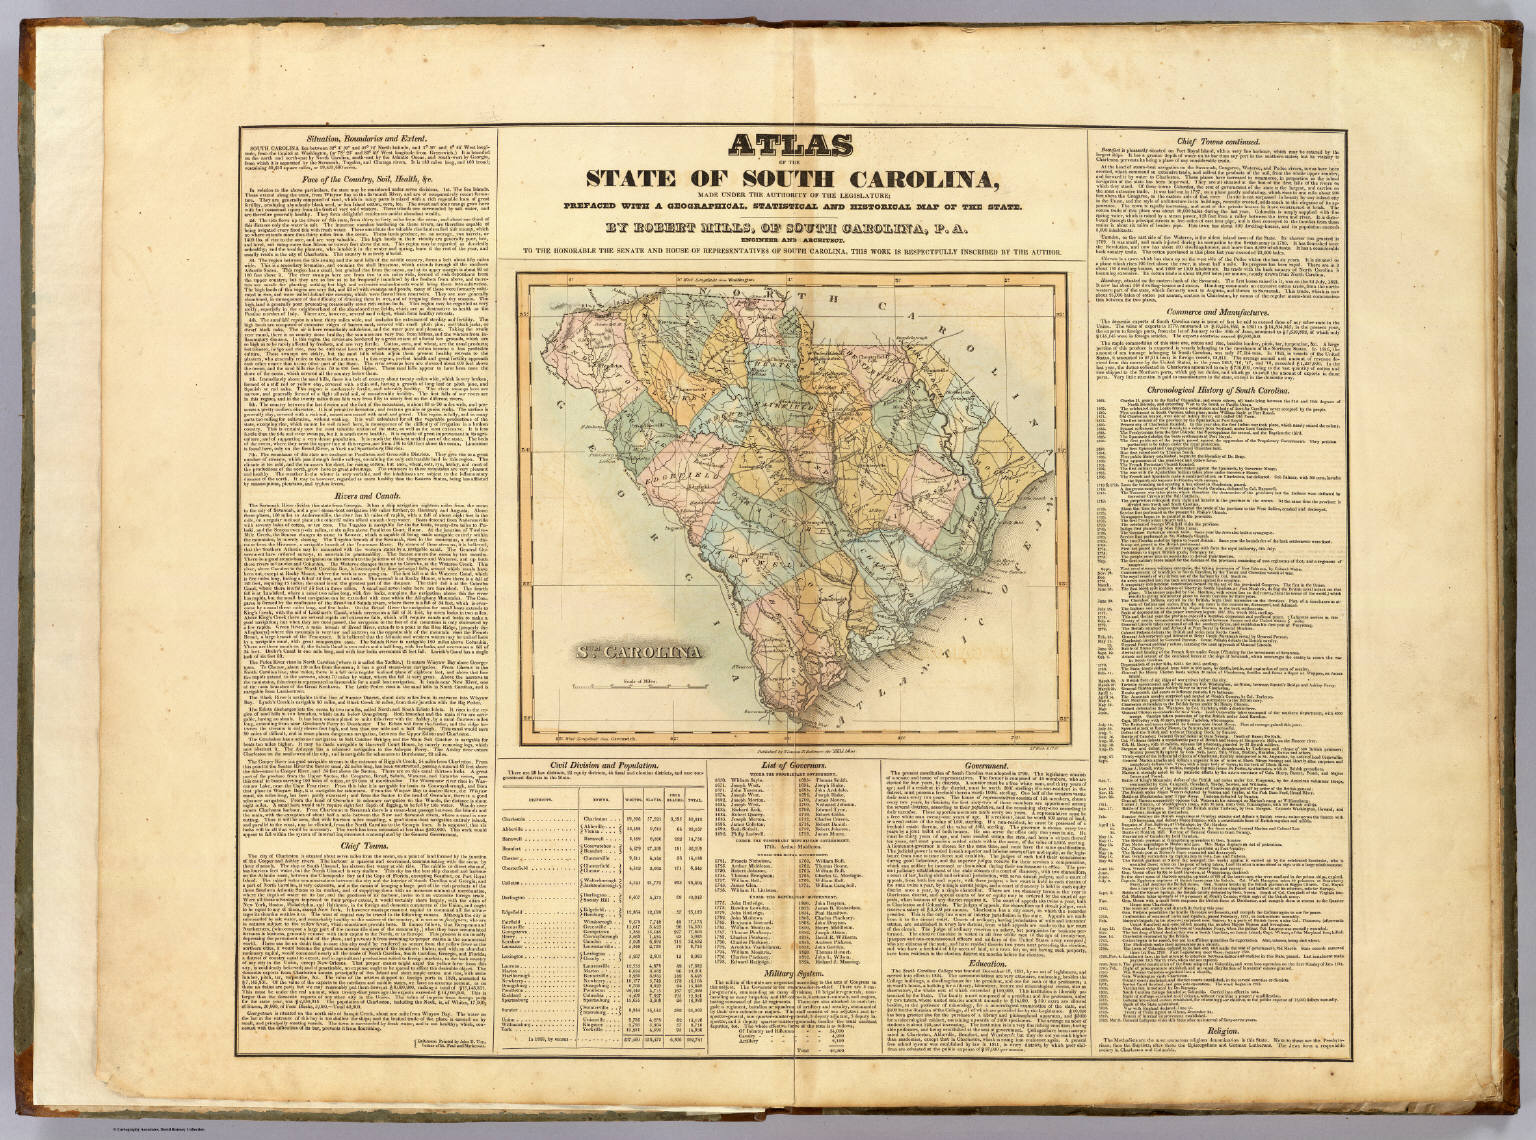 Title Page: Atlas of the State of South Carolina.